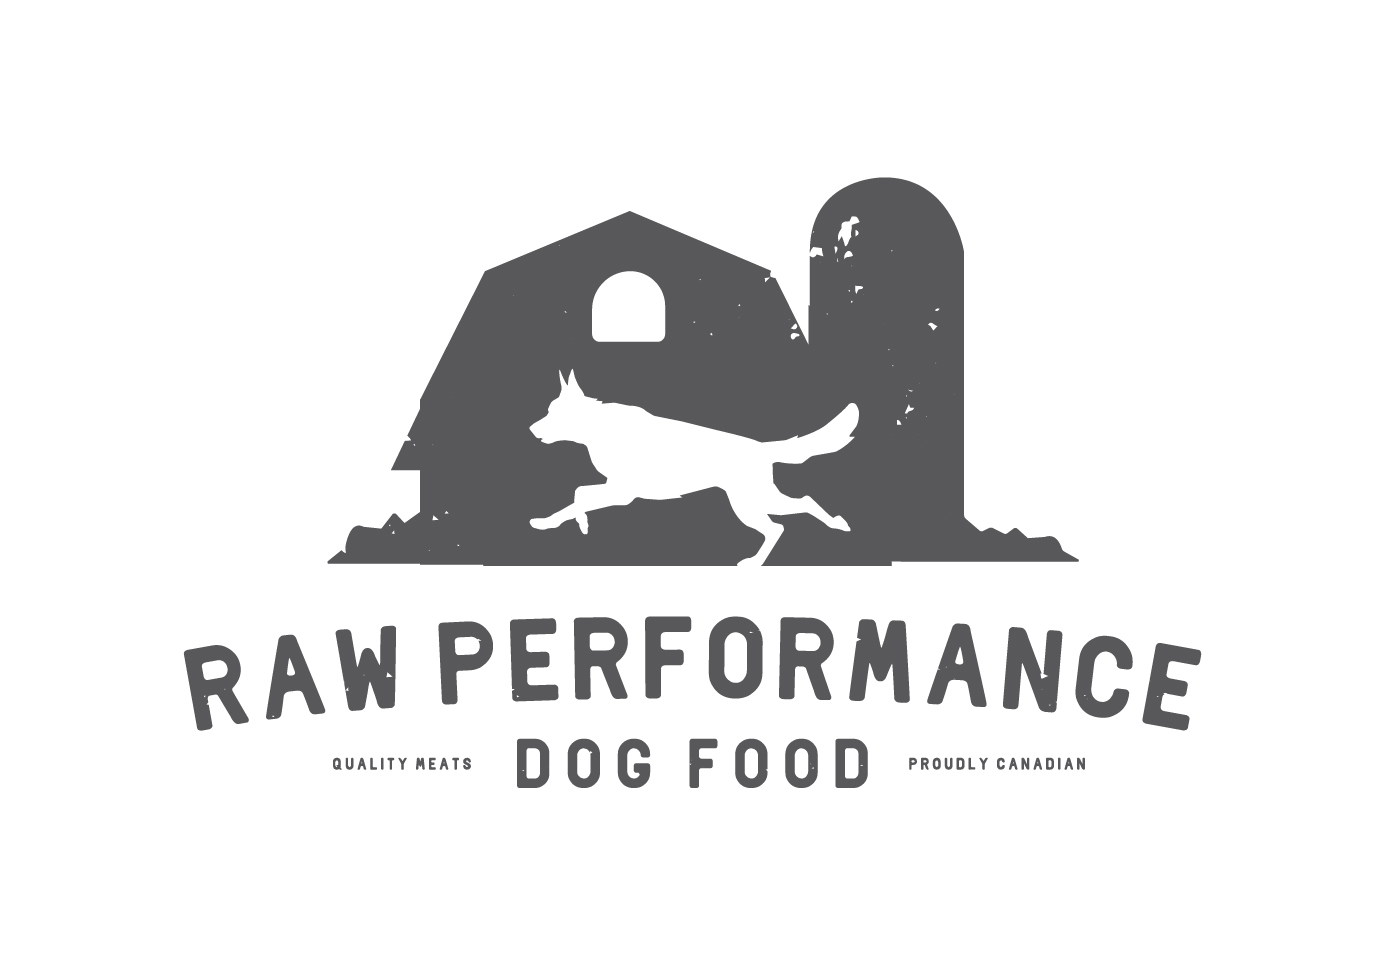 www.rawperformancedogfood.com